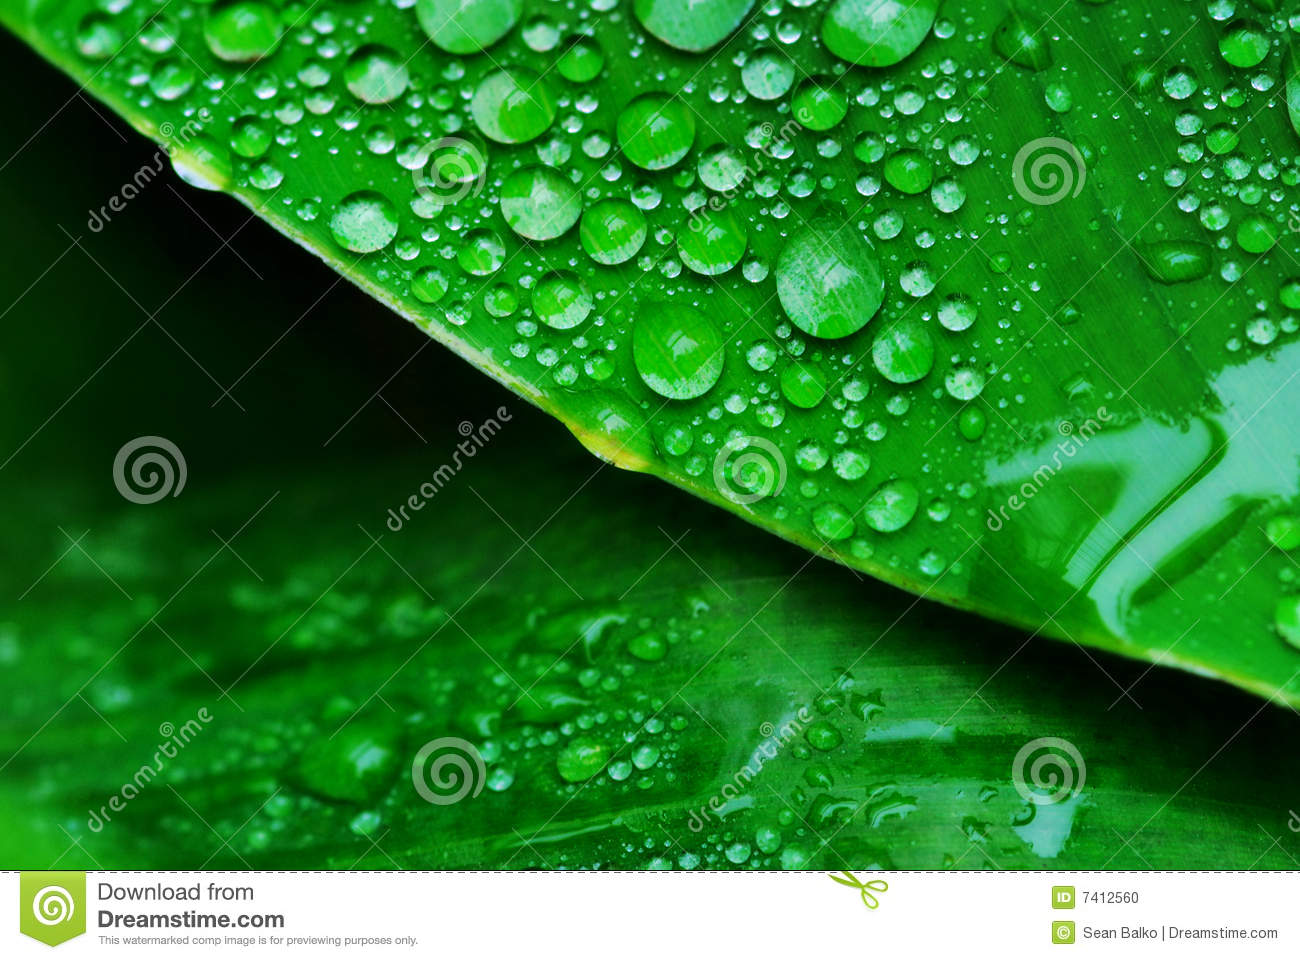 Green Leaf With Water Droplets Stock Photo.